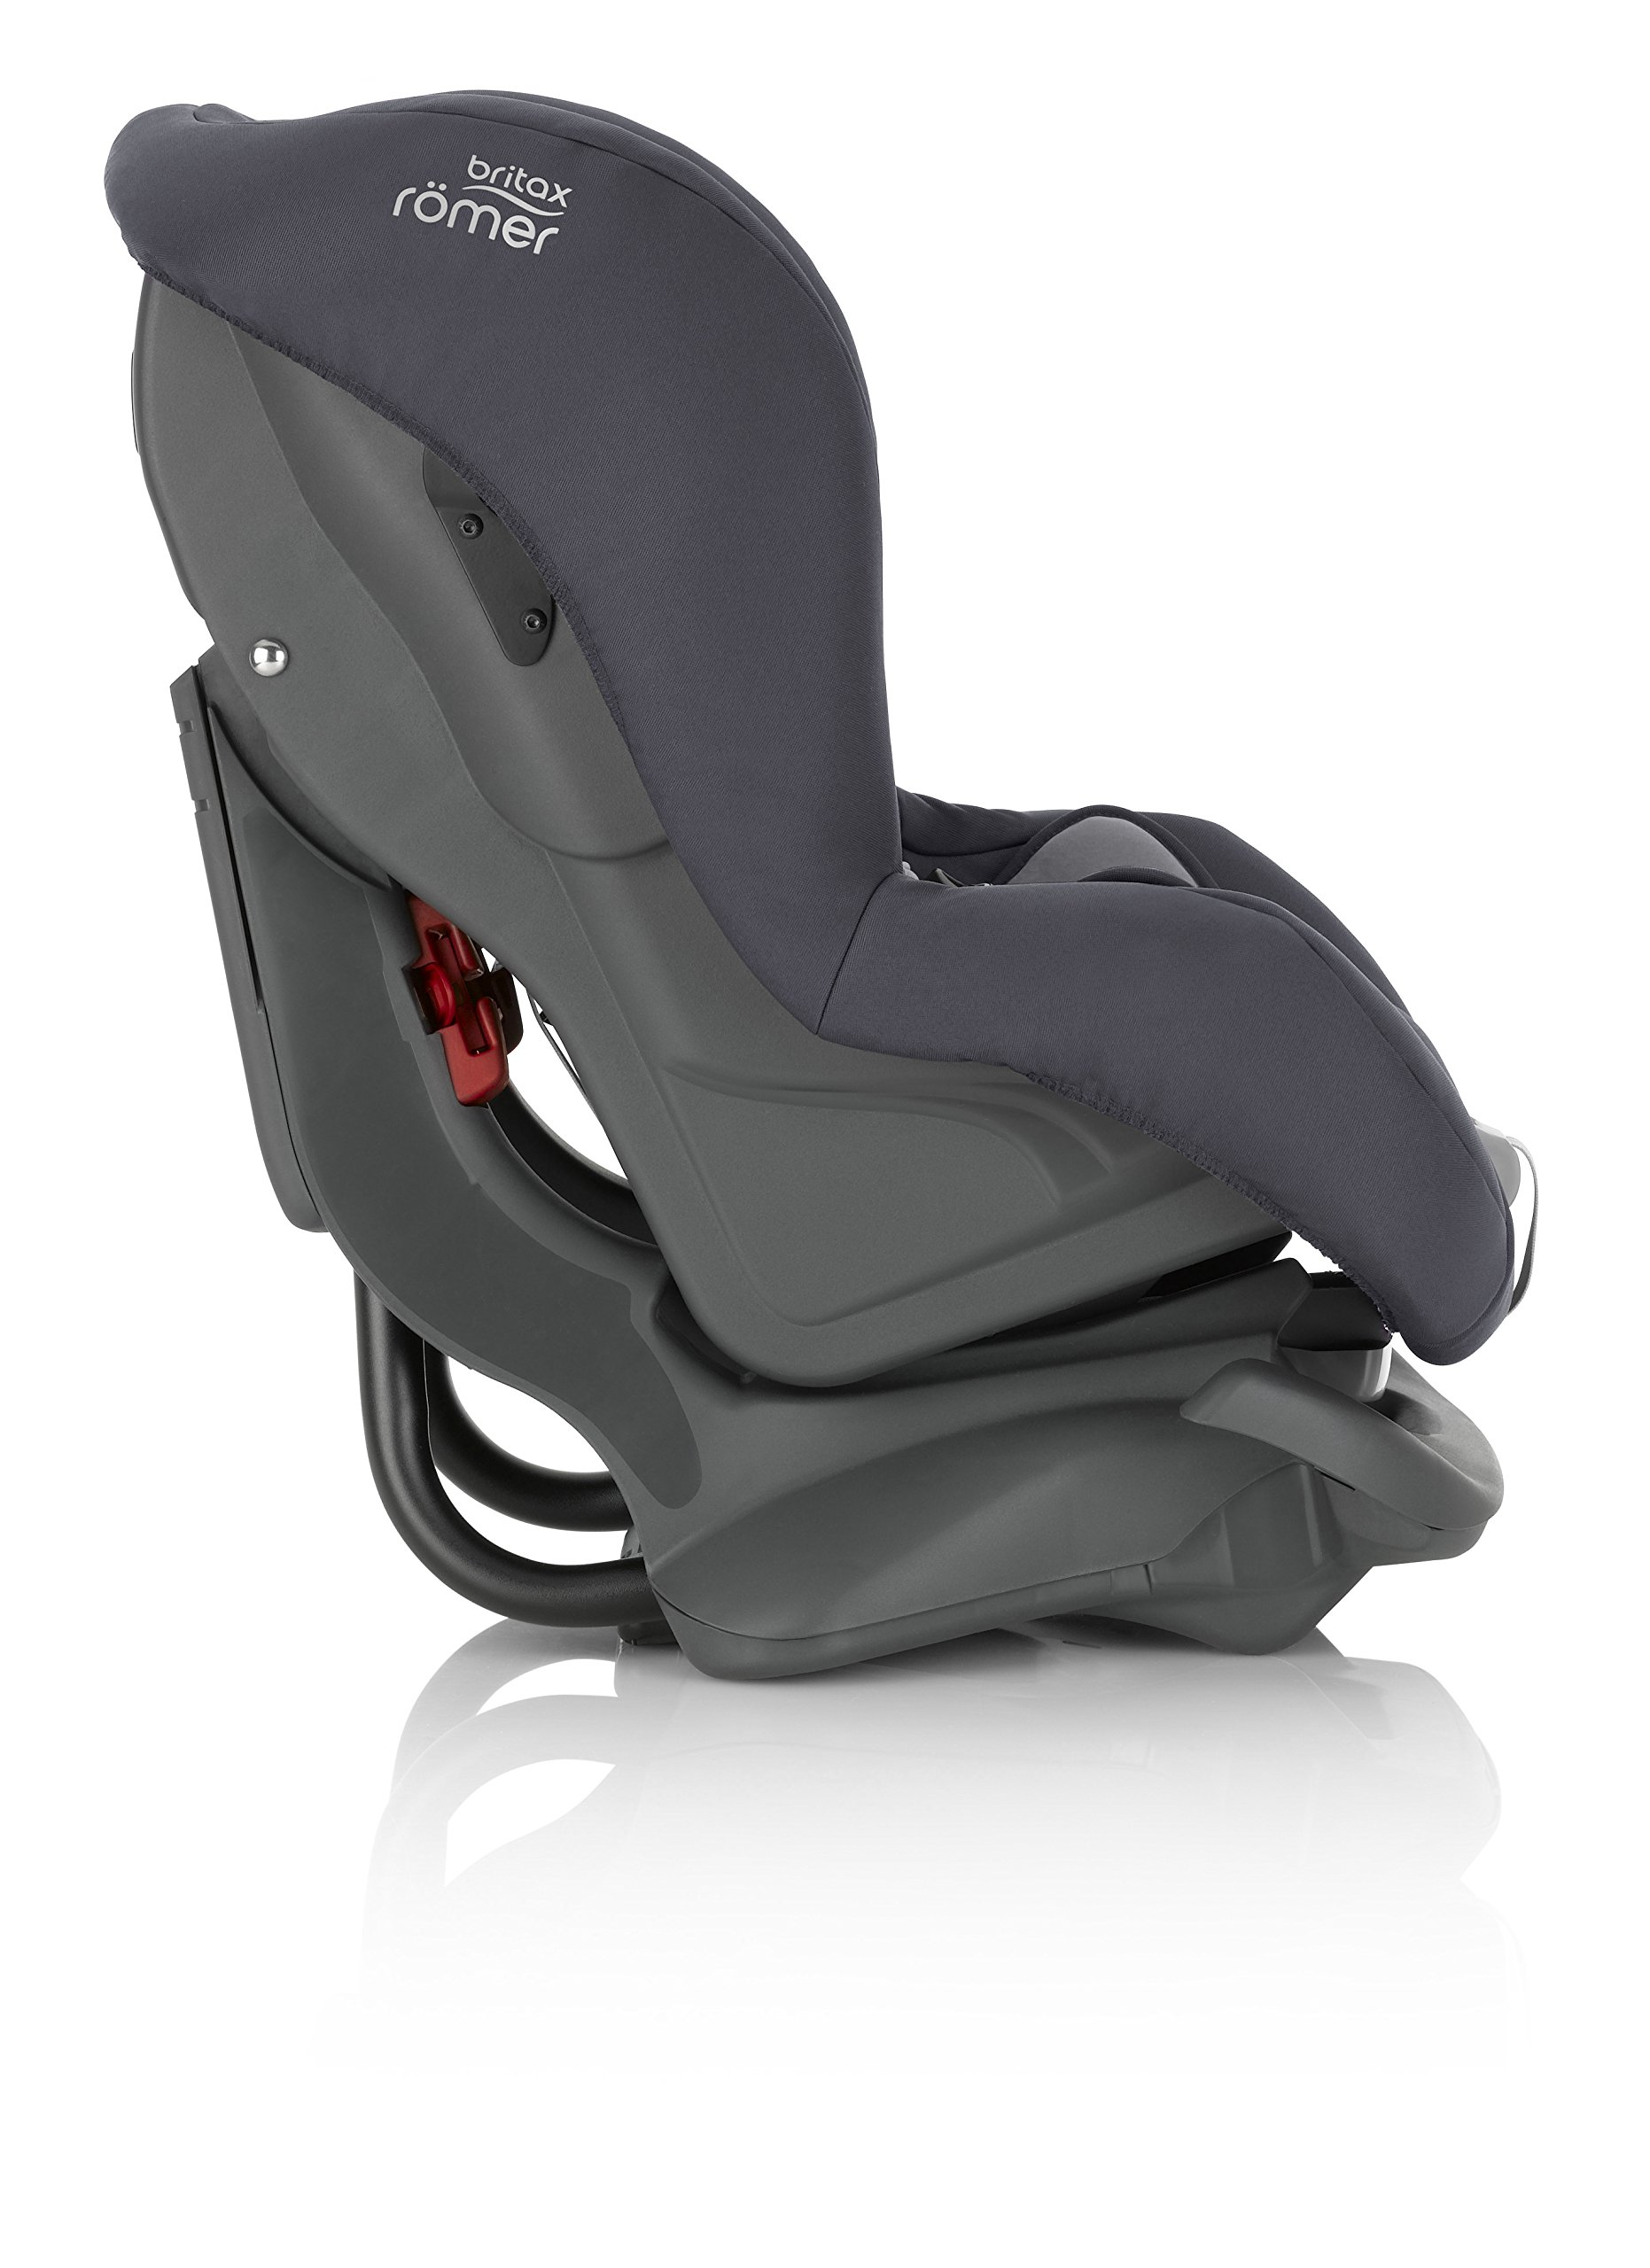 Britax Römer FIRST CLASS PLUS Group 0+/1 (Birth-18kg) Car Seat - Storm Grey  Extended recline position when rearward facing - the safest way to travel Reassurance built-in - Click and safe harness tensioning confirmation High quality protection - side impact protection Plus performance chest pads and pitch control system 5